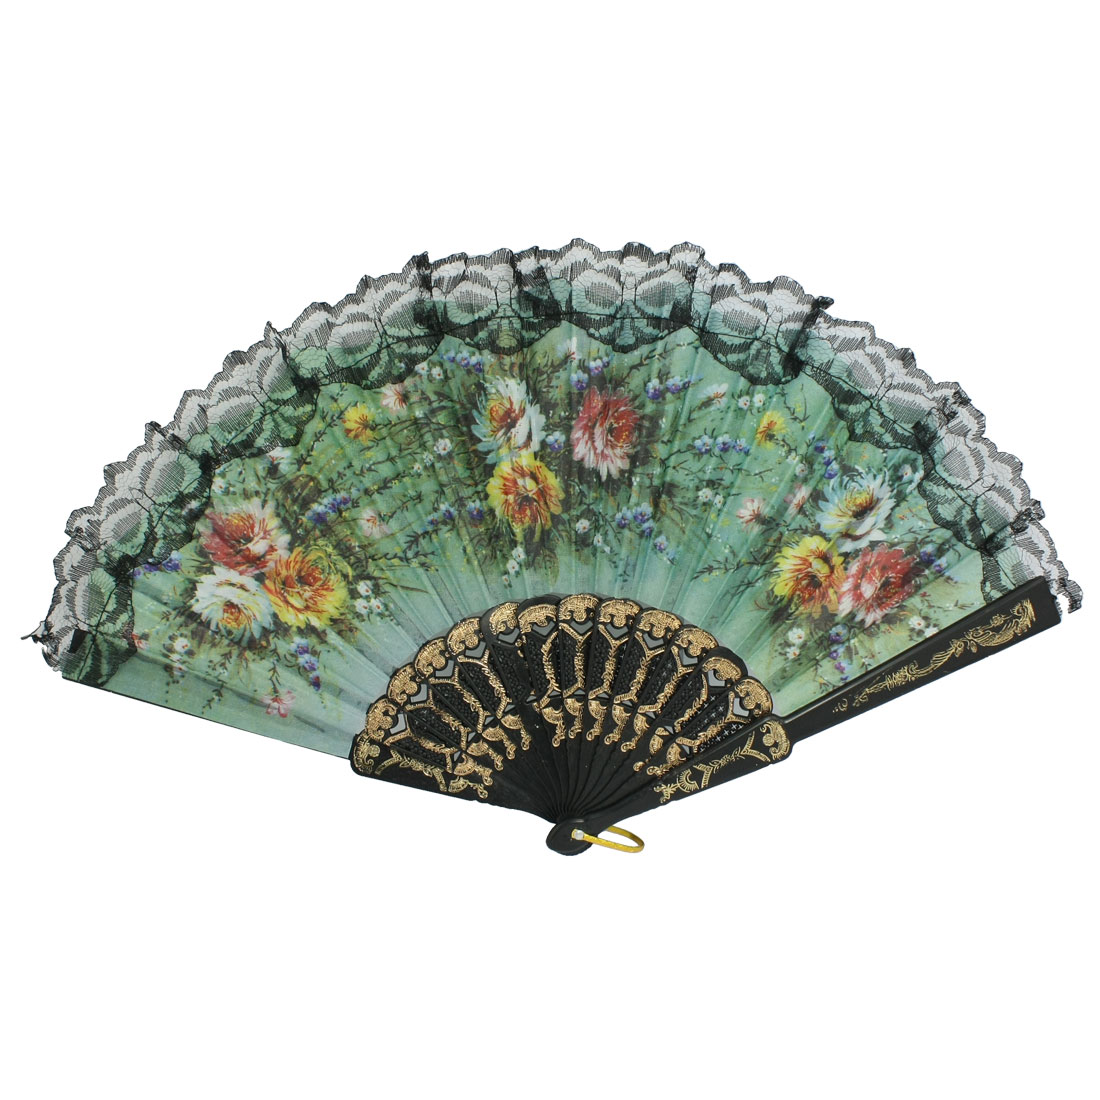 Chrysanthemum Print Rib Lace Trim Dancing Hand Fan Black Green with D Ring